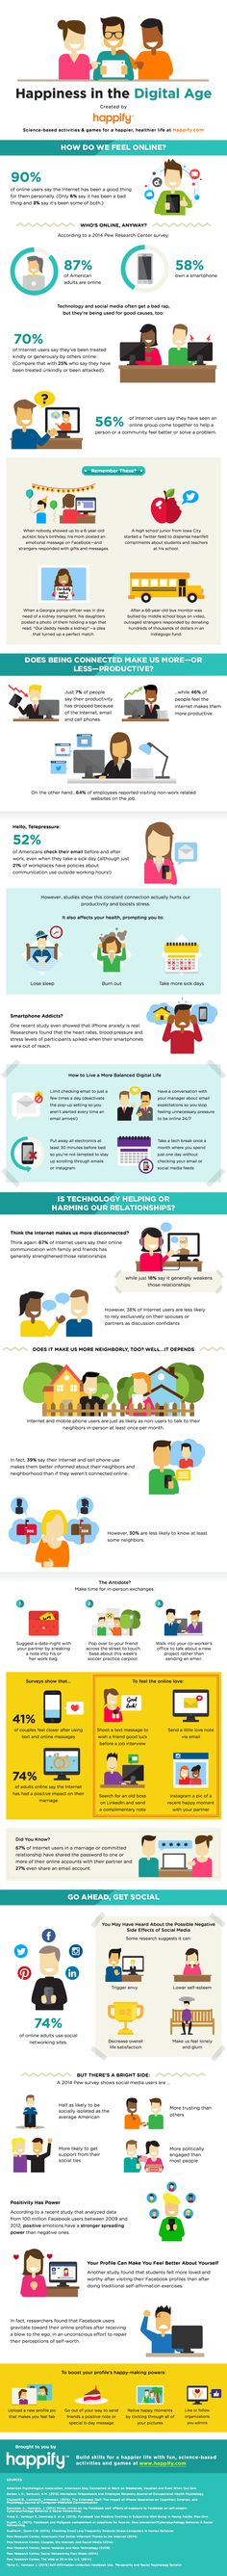 Here is how technology impacts our happiness.